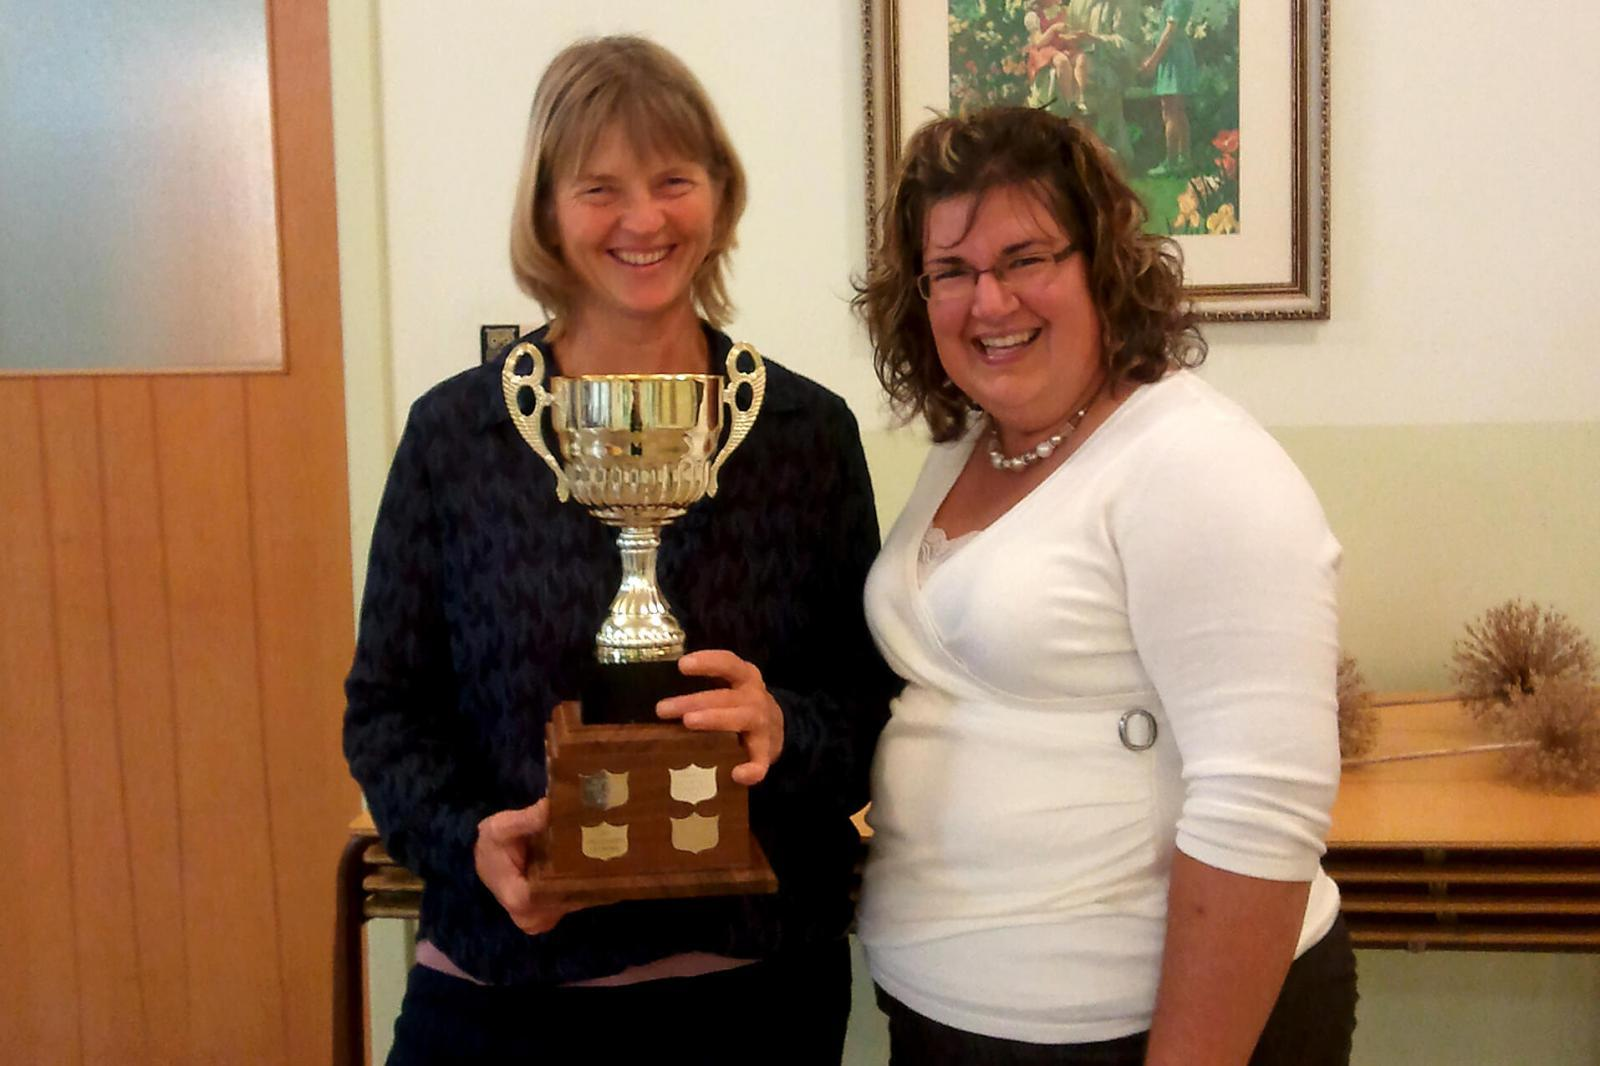 Bonita Glover of The Garden Network, left, accepts the Commercial Beautification Trophy from Lisa Smith of Lisa Purves Garden Design and Consultation, a member of Upper Canada Chapter board of directors.